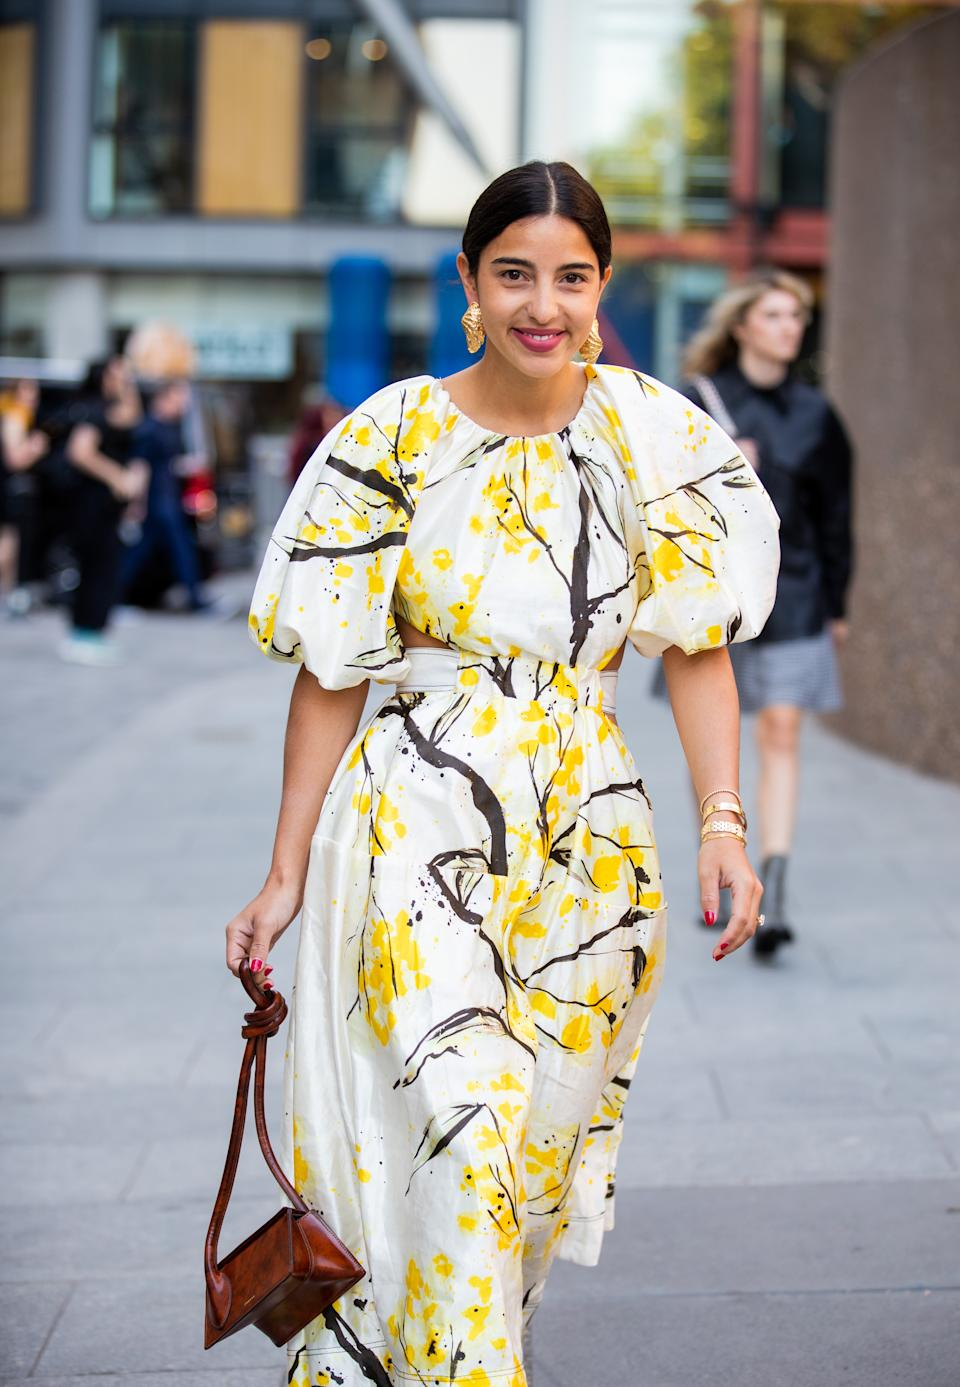 Bettina Looney is seen wearing yellow white dress with graphic print, brown bag outside Ports 1961. [Photo: Getty]